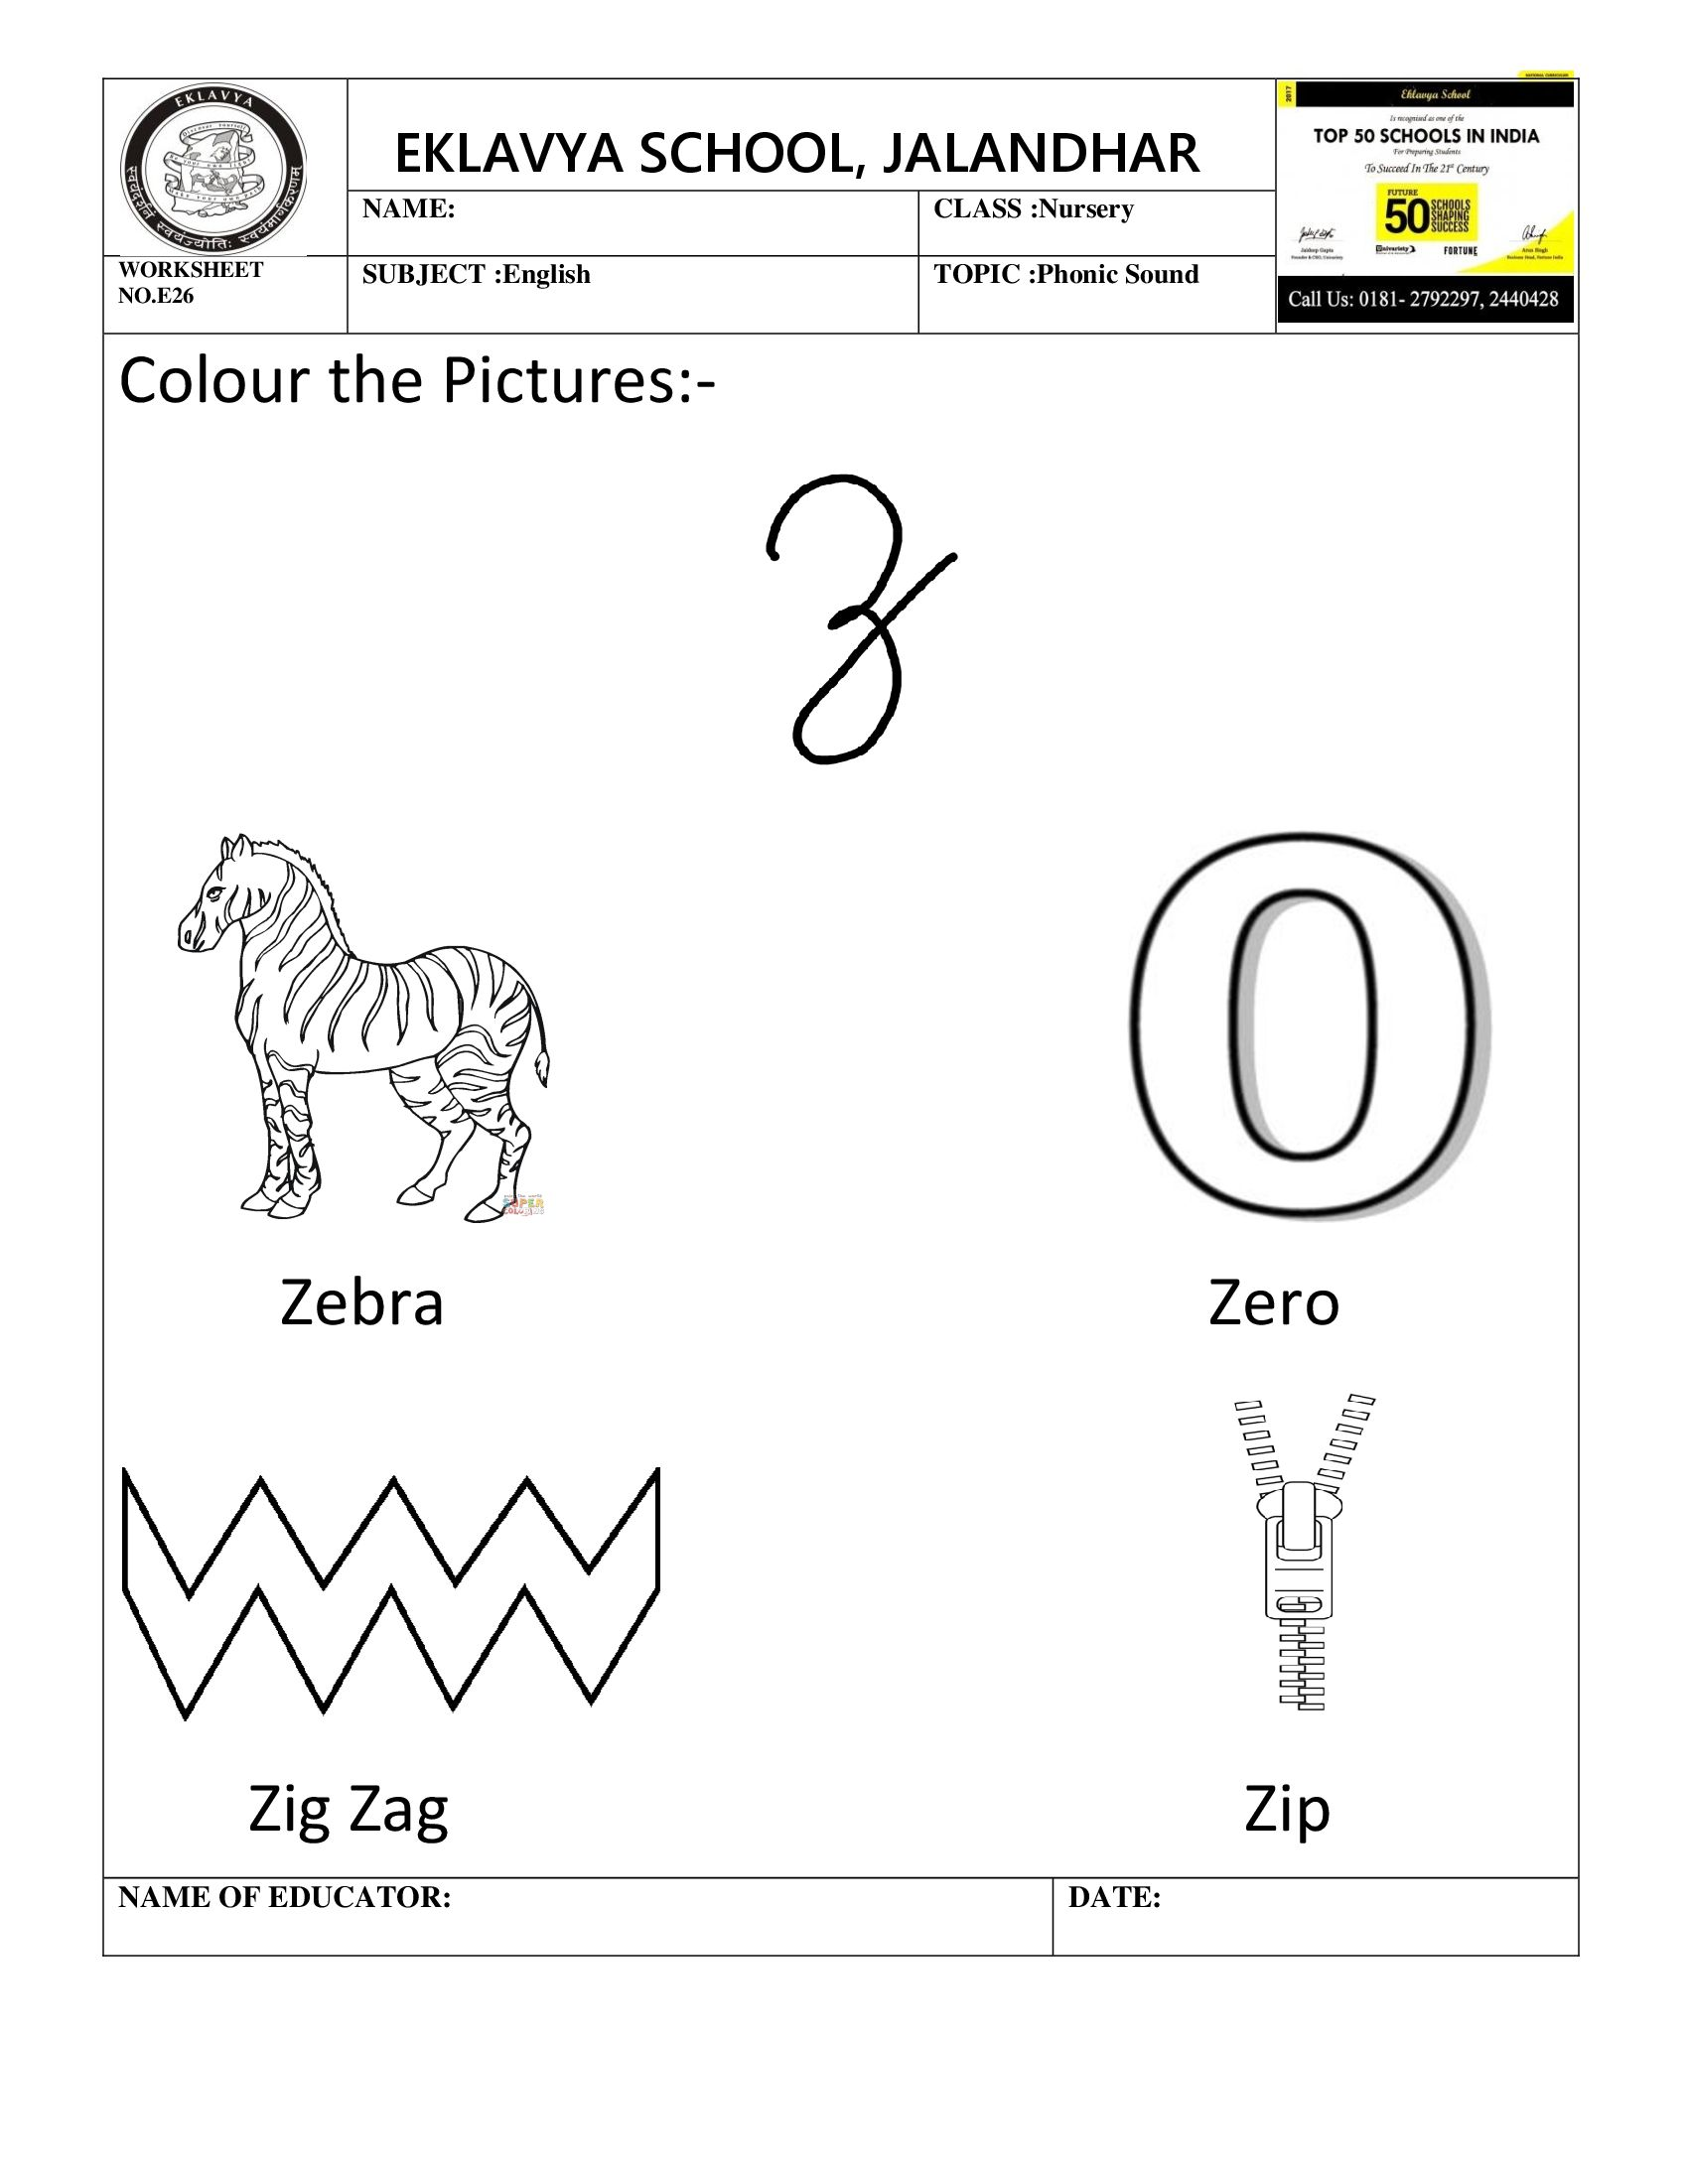 Worksheet On Phonic Sound Z